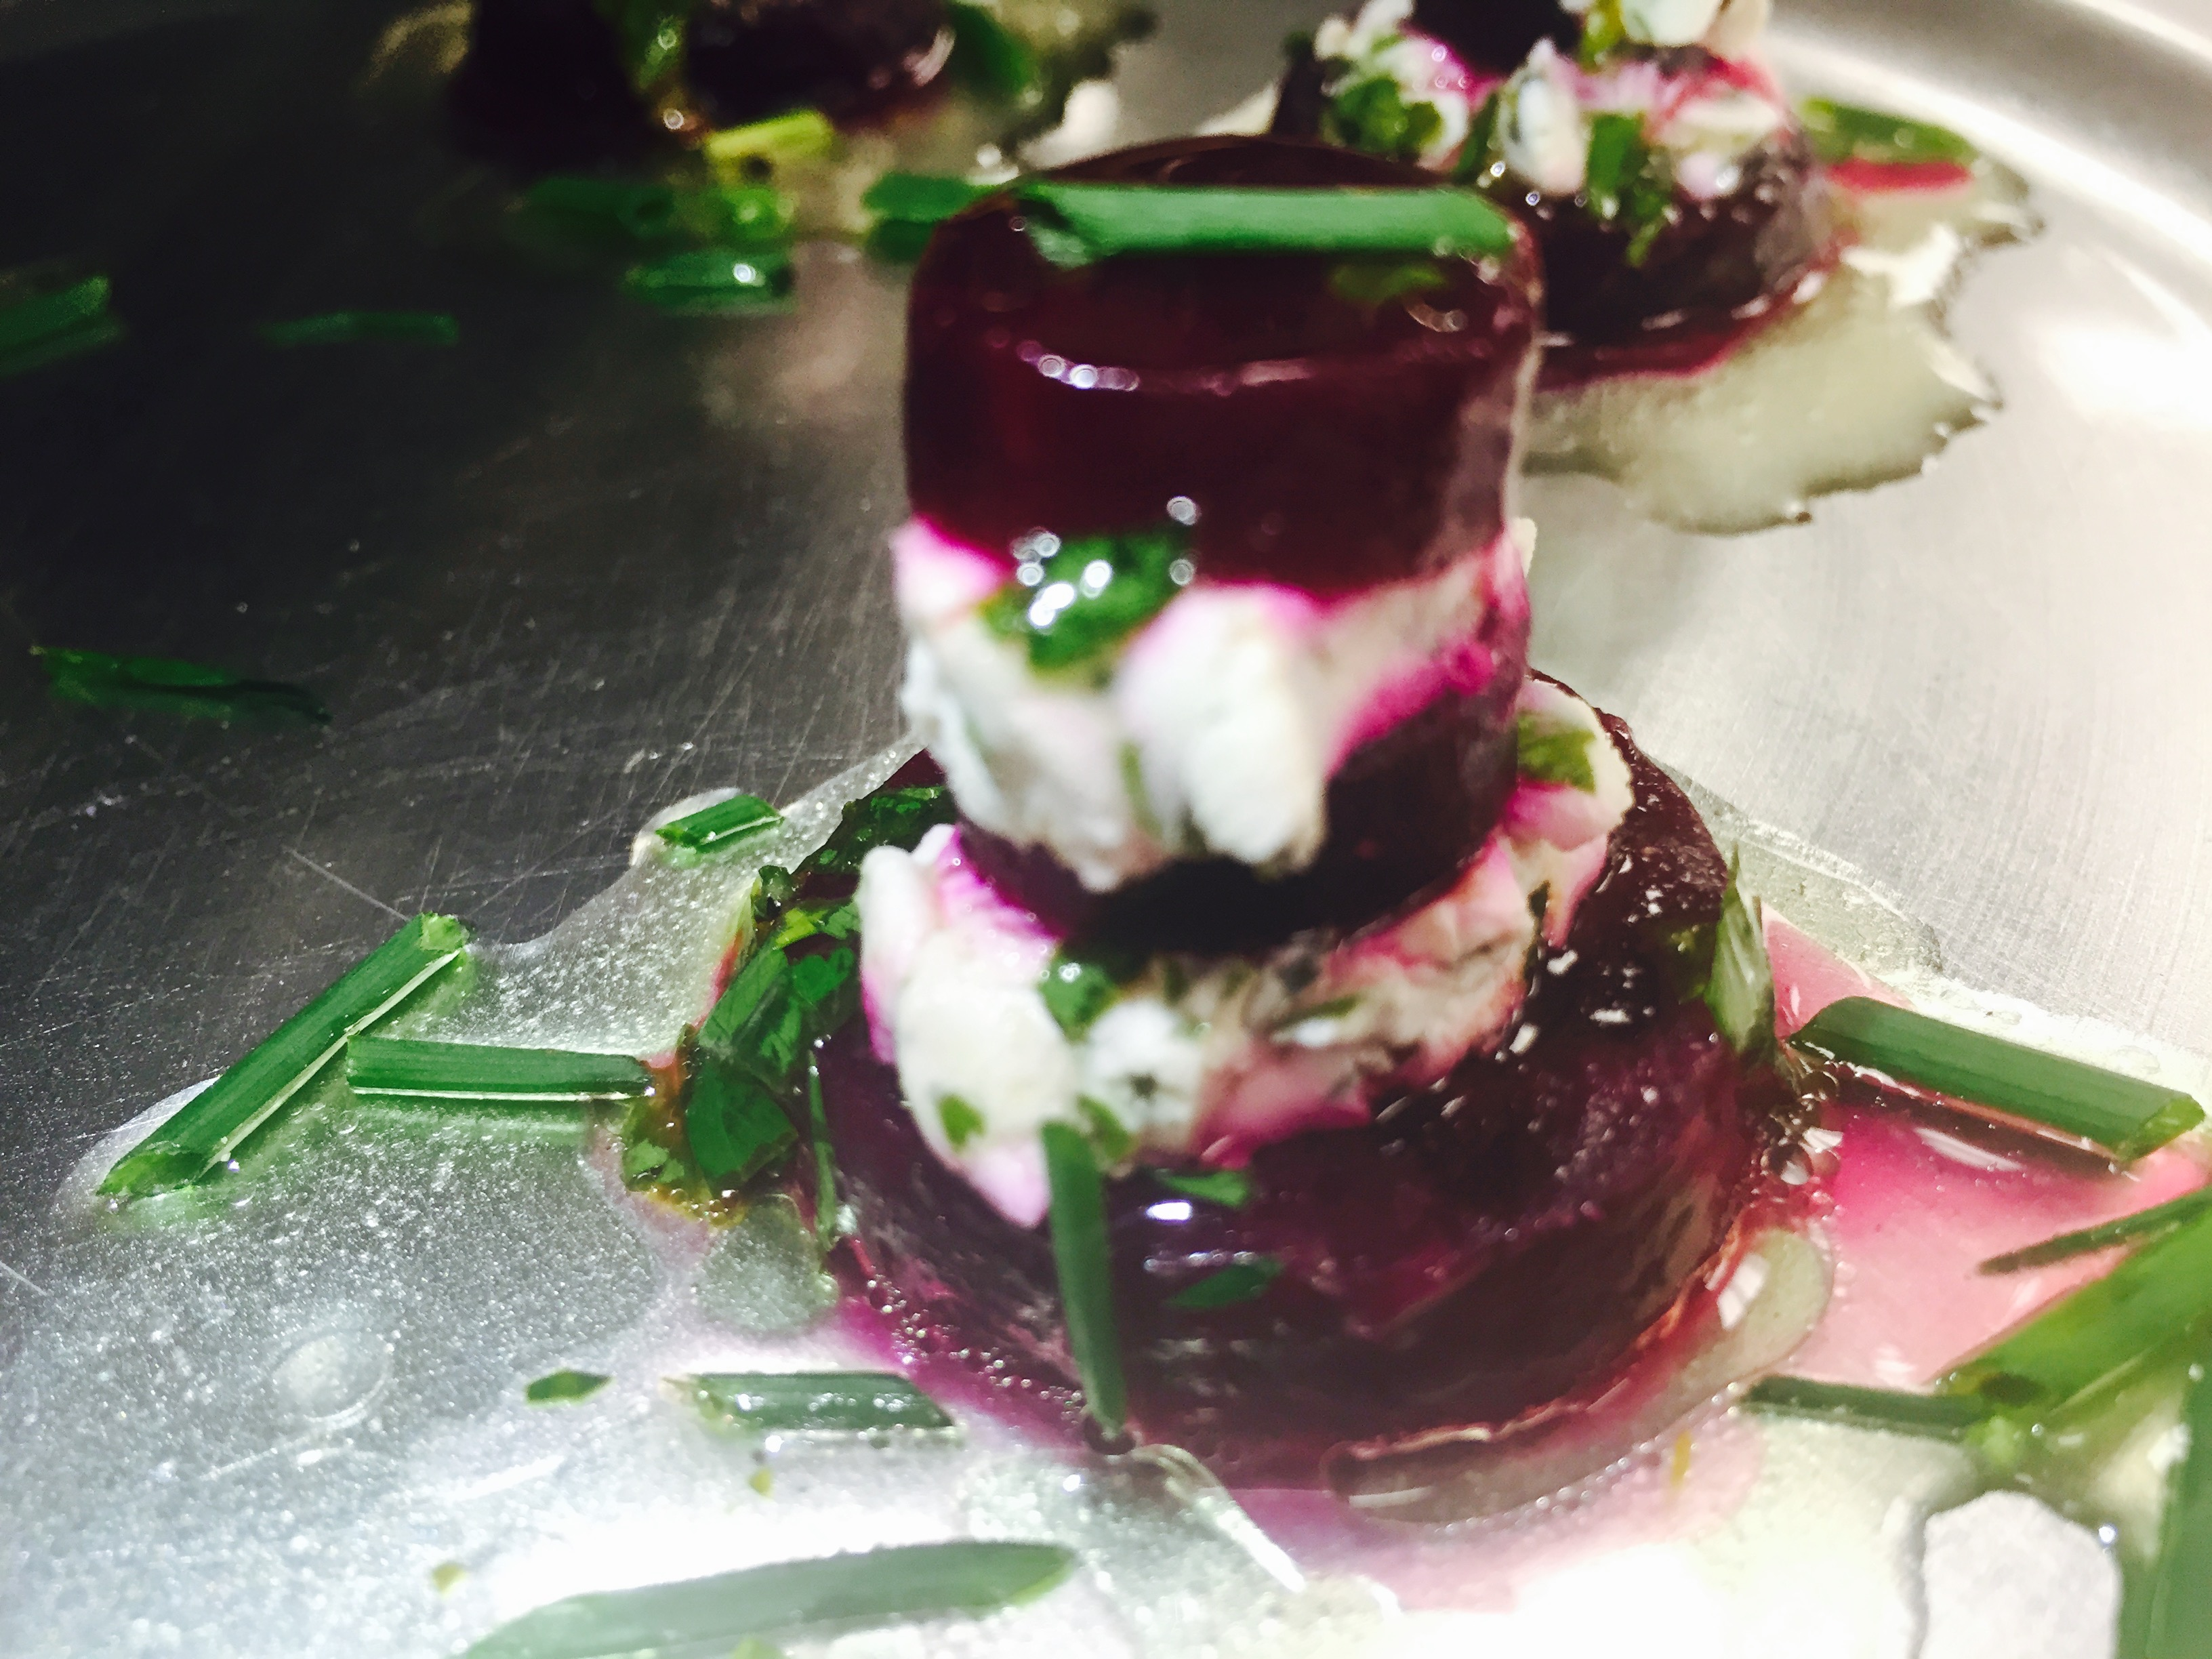 Roasted Beet and Herbed Goat Cheese Napoleons Topped with Micro Radish Greens